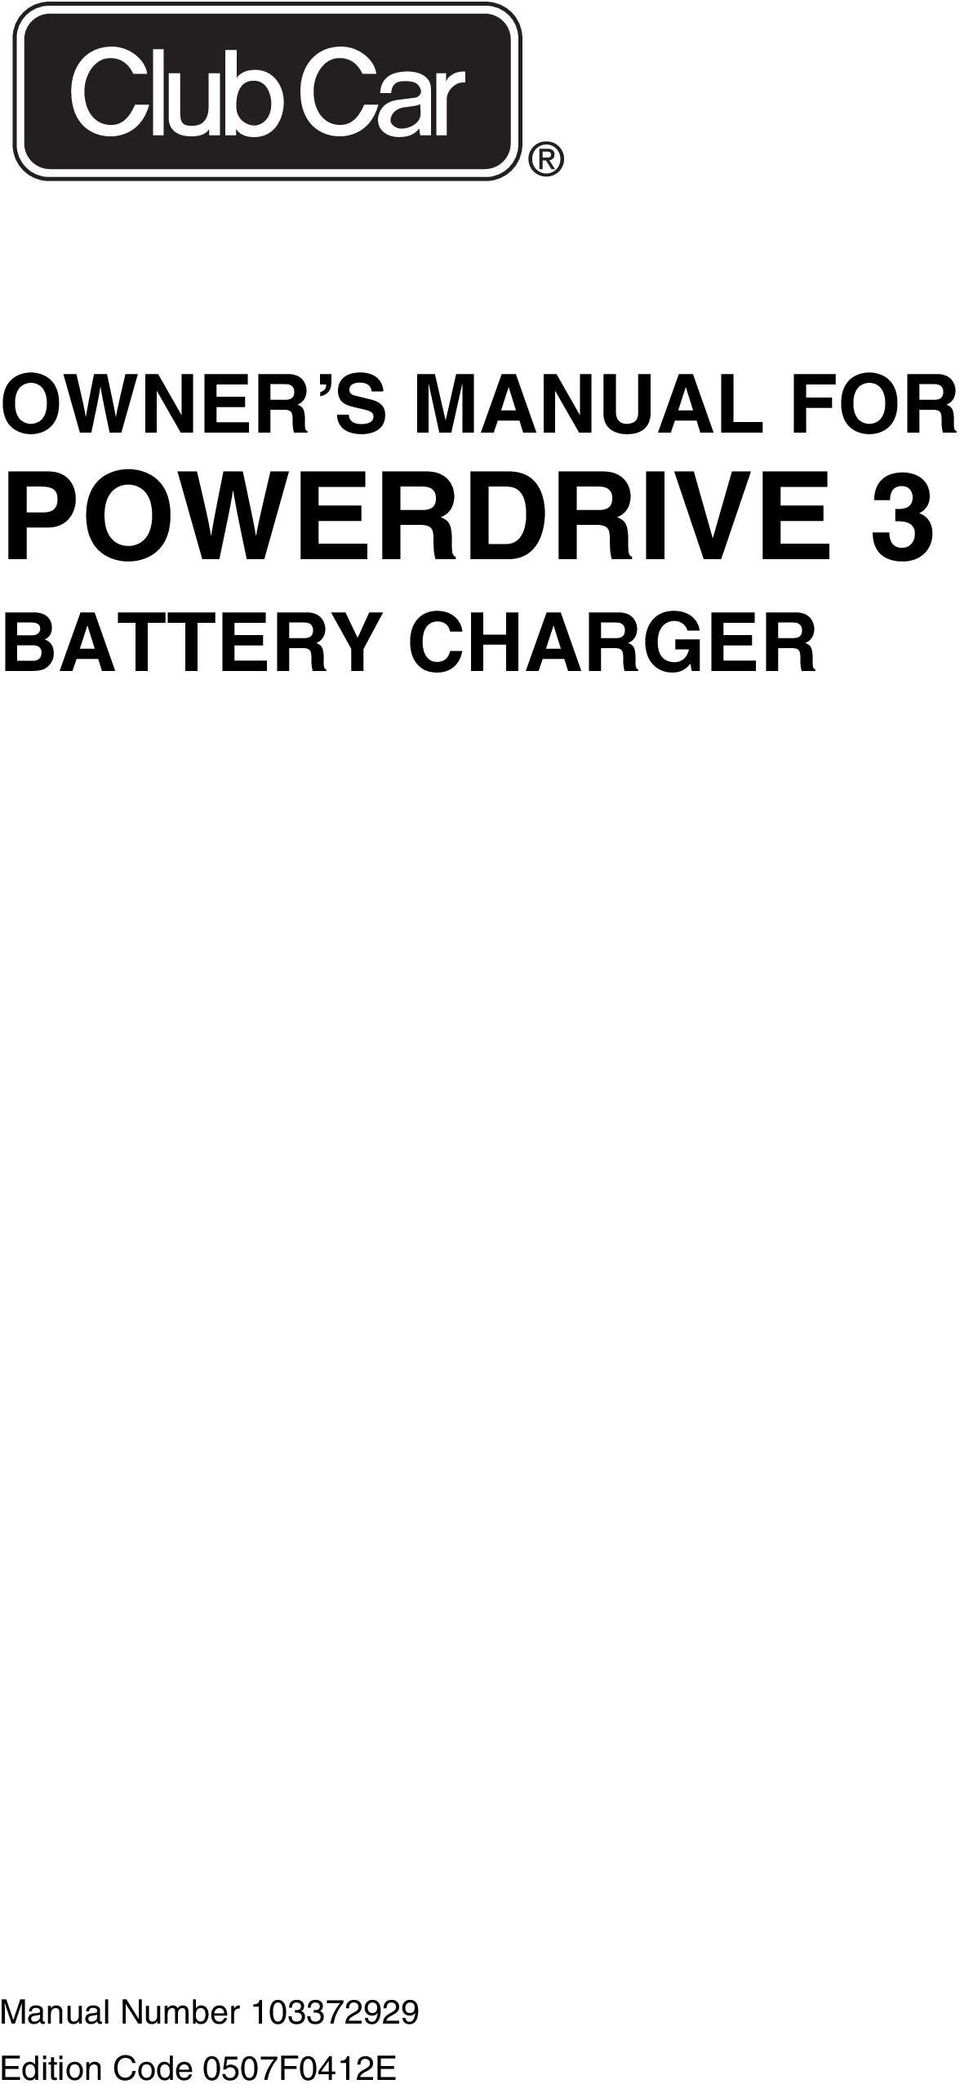 CHARGER Manual Number